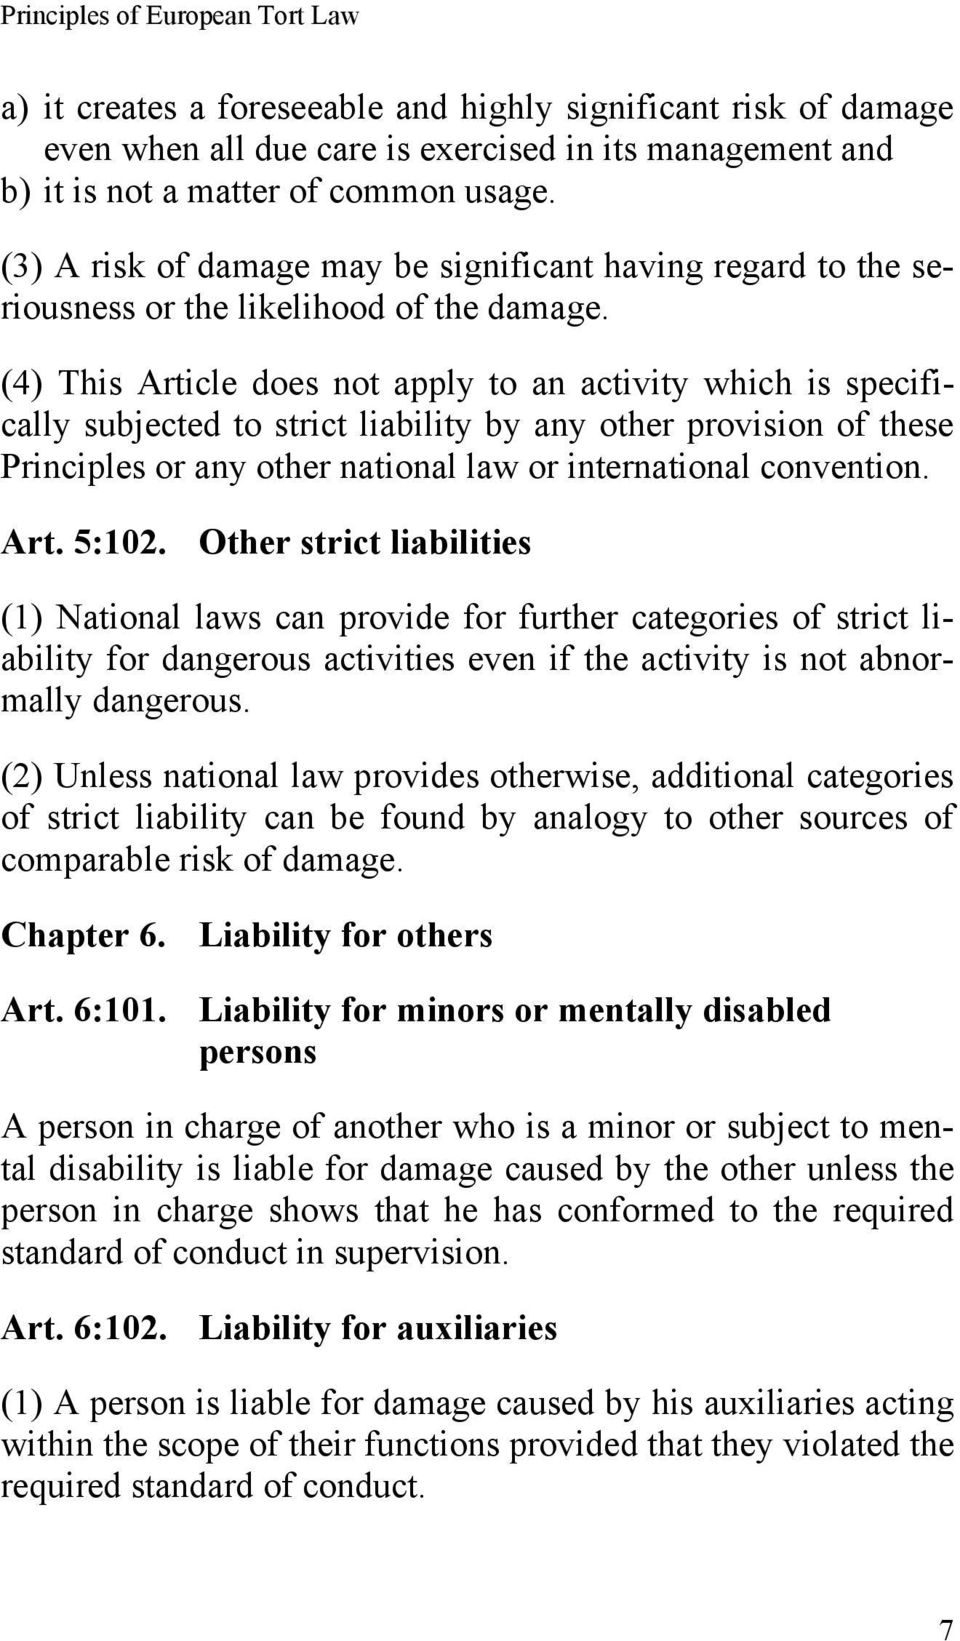 (4) This Article does not apply to an activity which is specifically subjected to strict liability by any other provision of these Principles or any other national law or international convention.